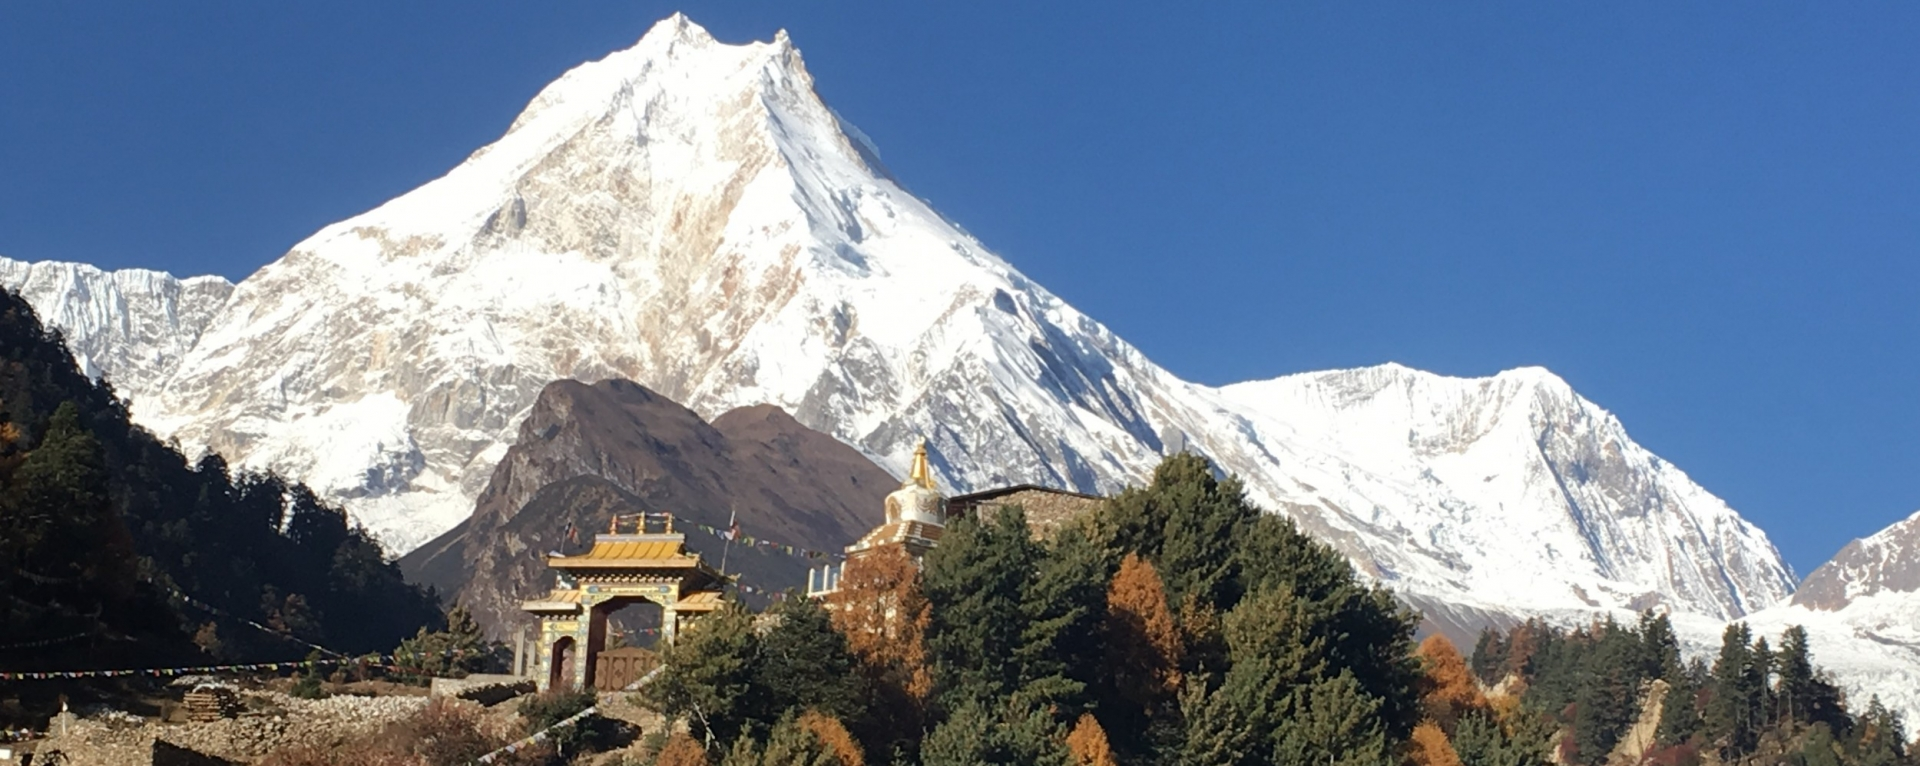 The view of Mt. Manaslu from Lho gaun.